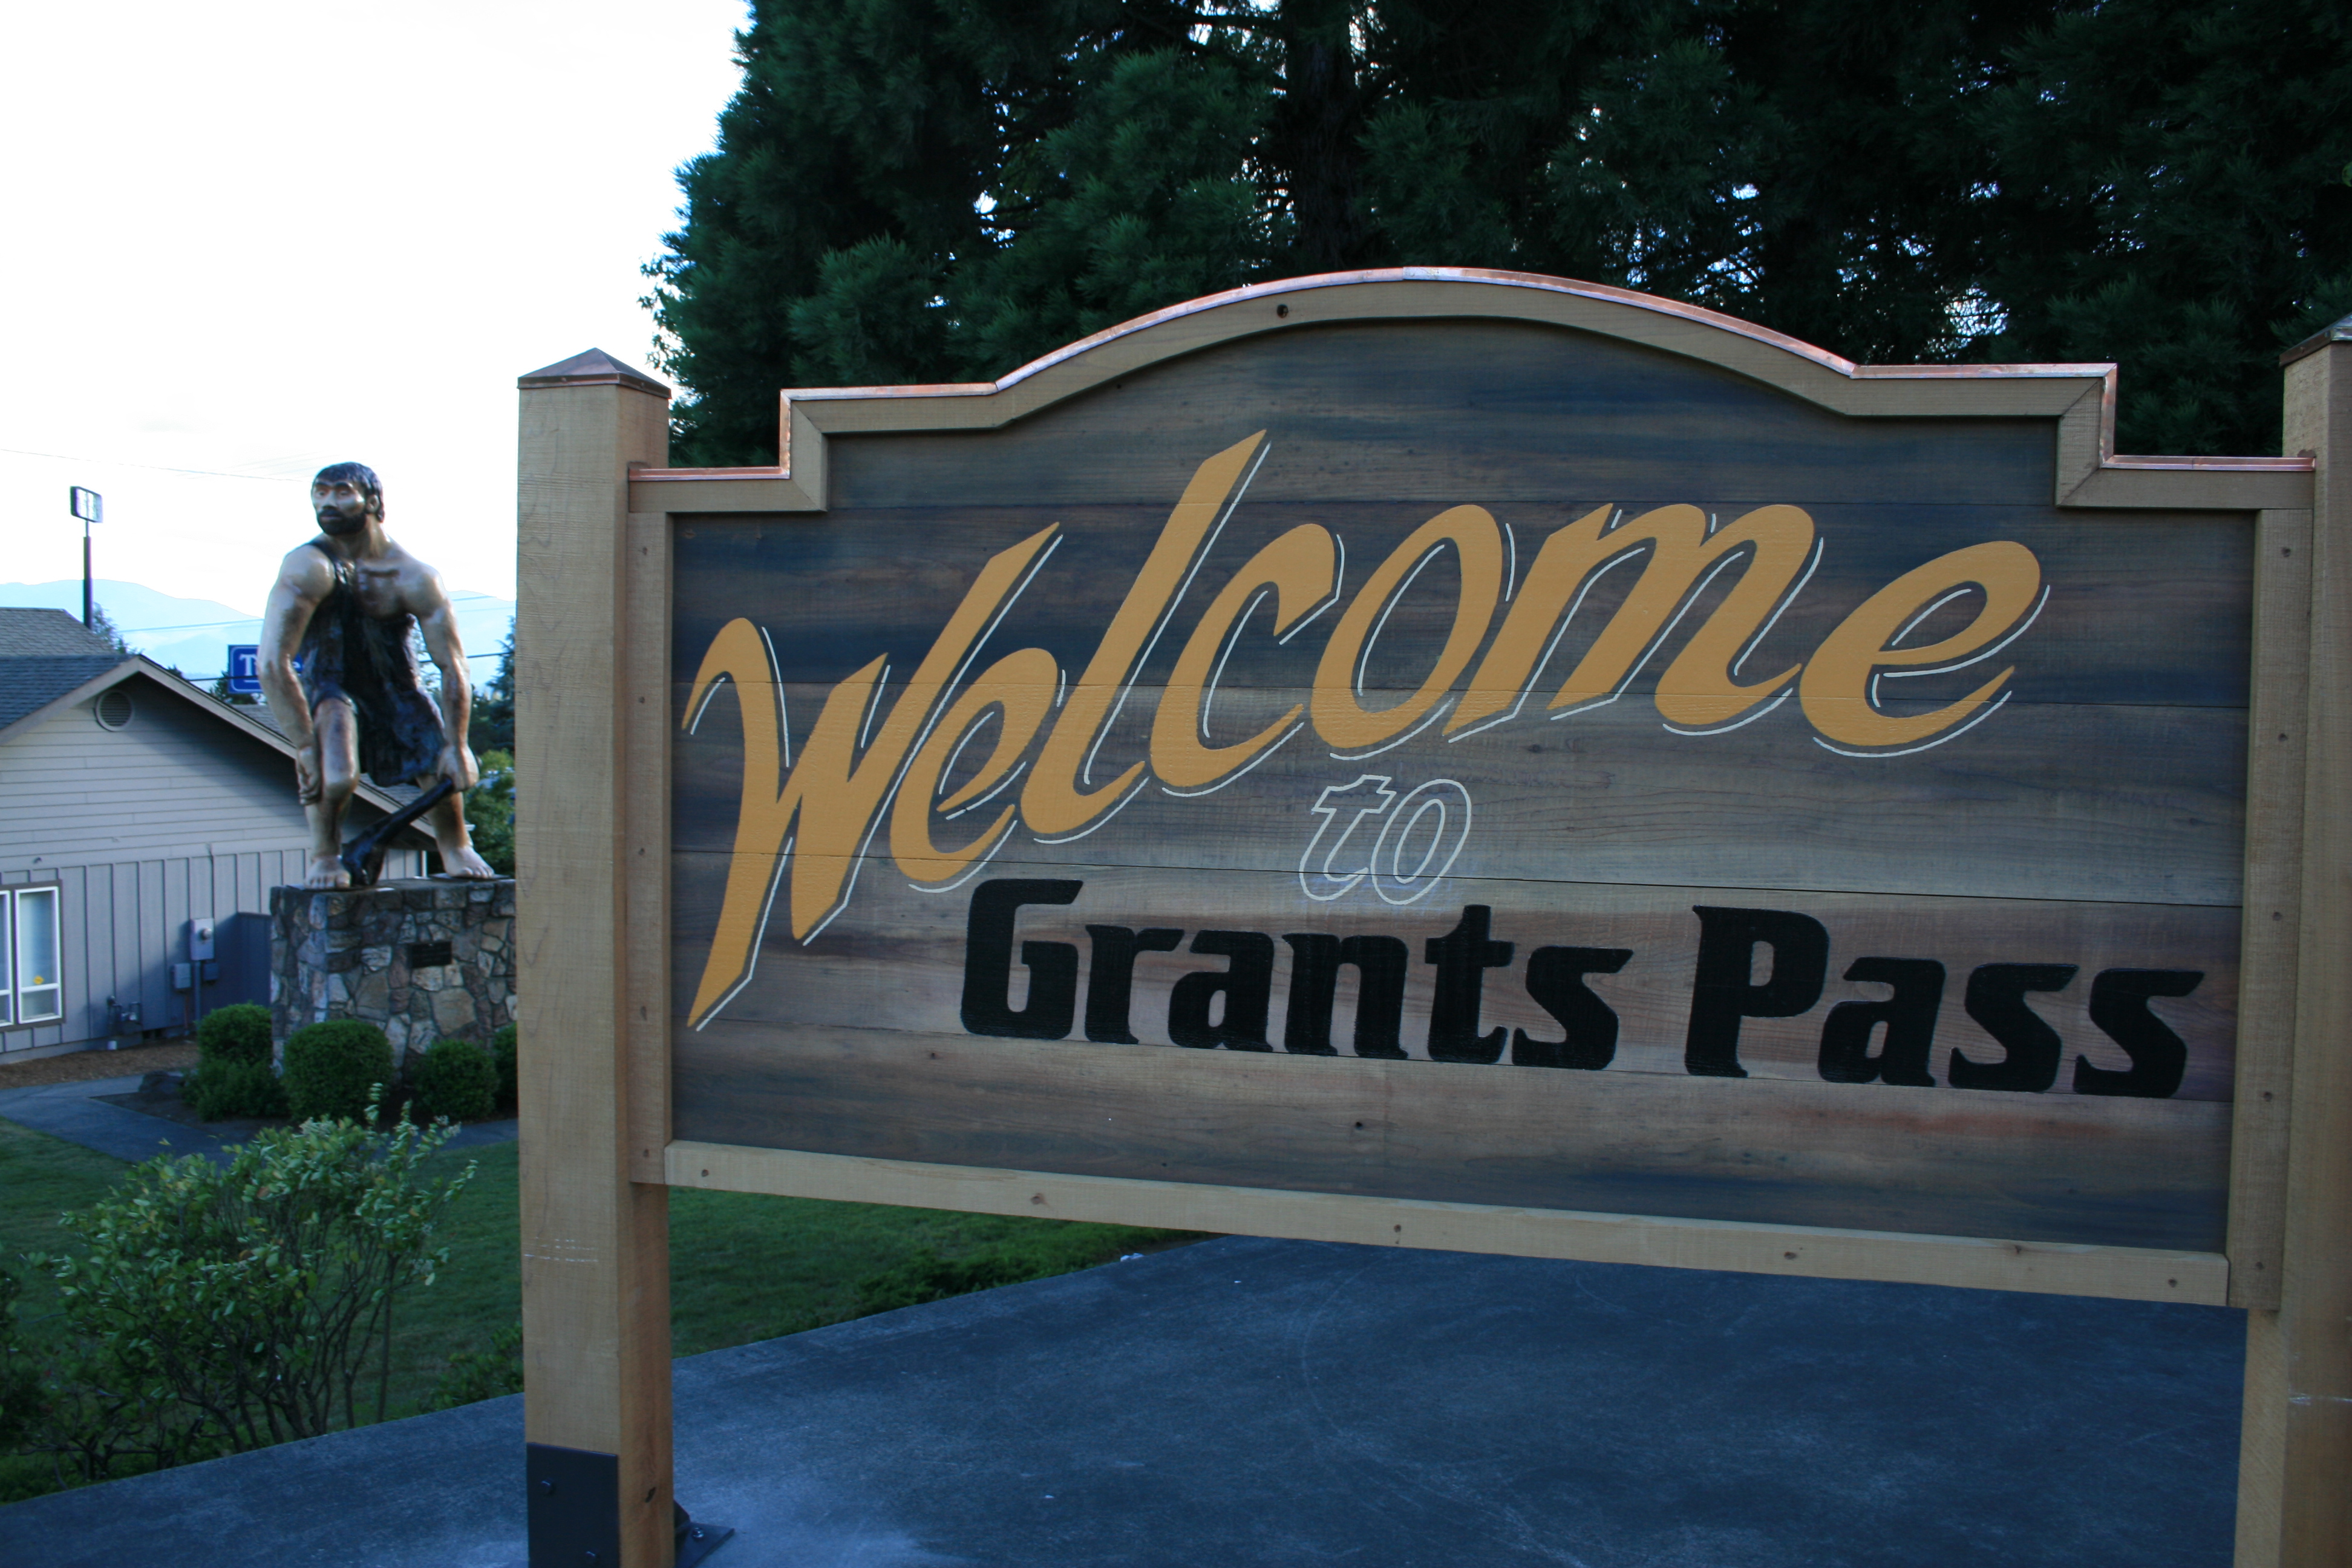 grants pass Grants pass is a city in, and the county seat of, josephine county, oregon, united states the city is located on interstate 5, northwest of medford.